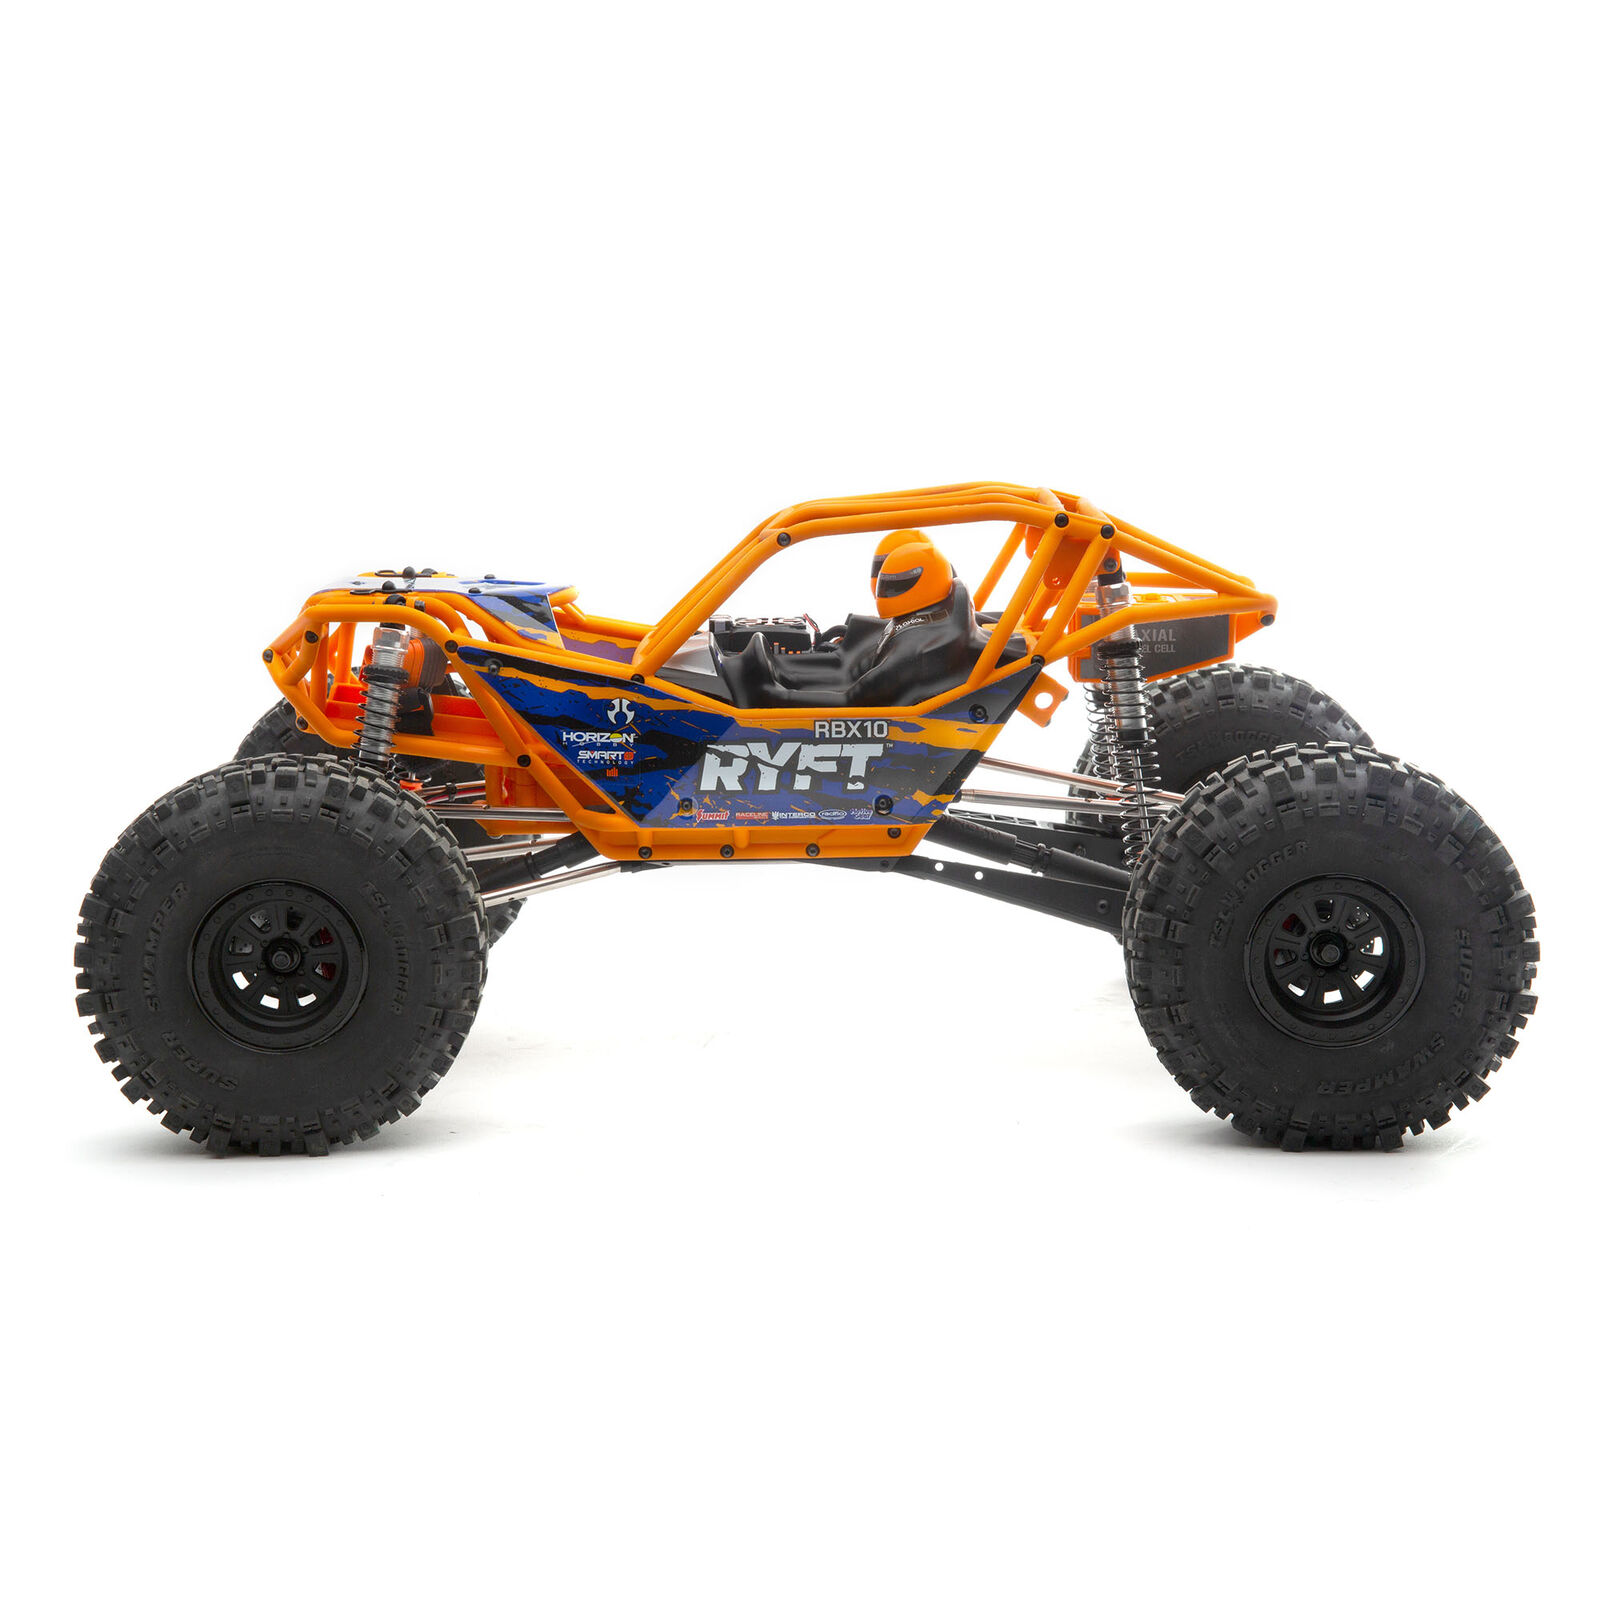 1/10 RBX10 Ryft 4WD Brushless Rock Bouncer RTR, Orange